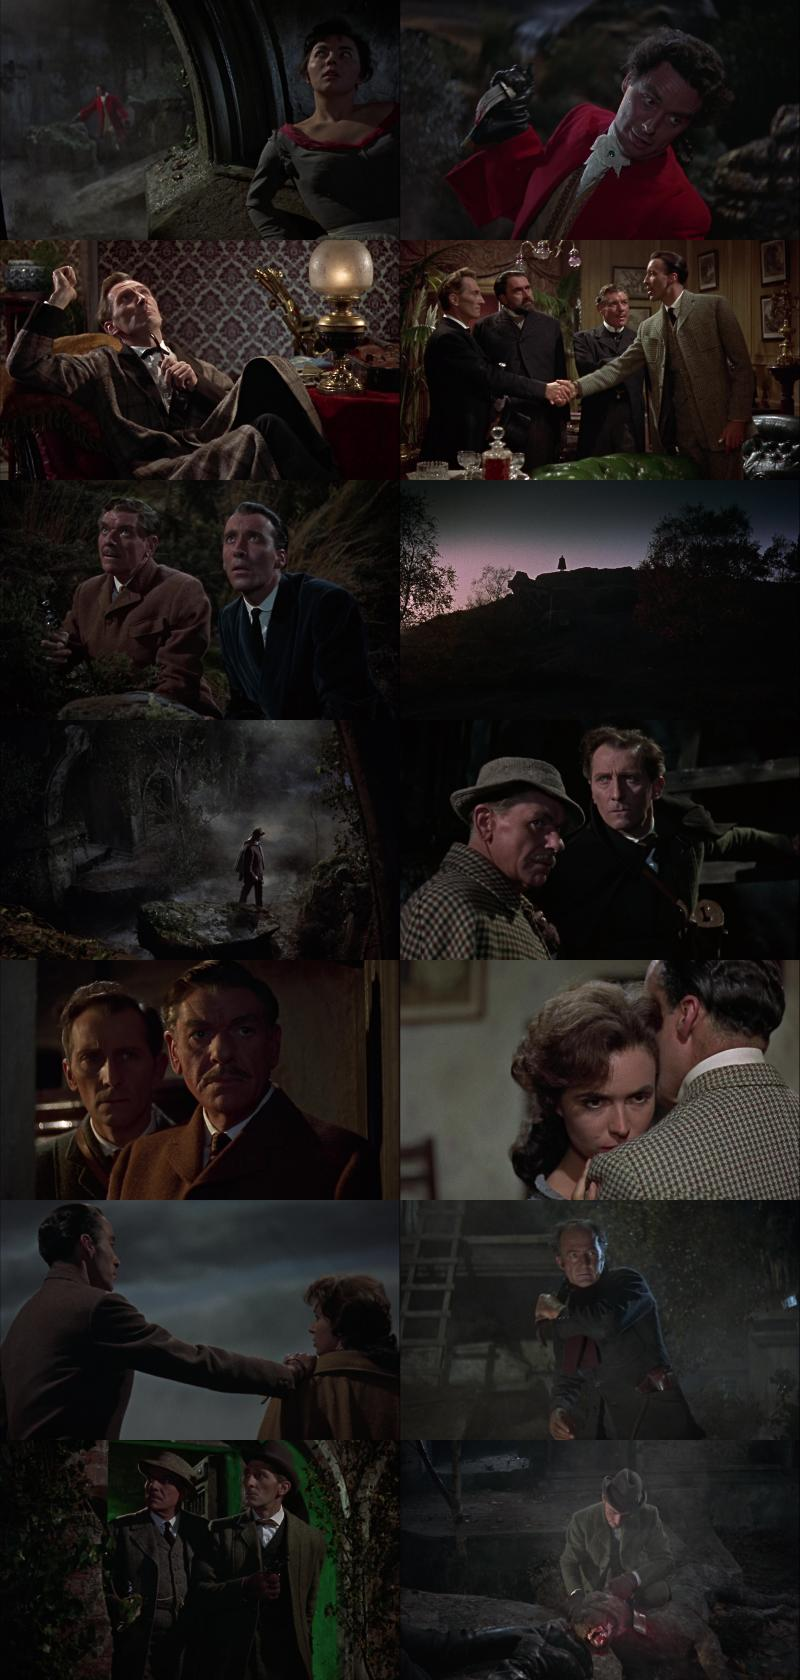 http://watershade.net/public/hound-of-the-baskervilles-1959.jpg